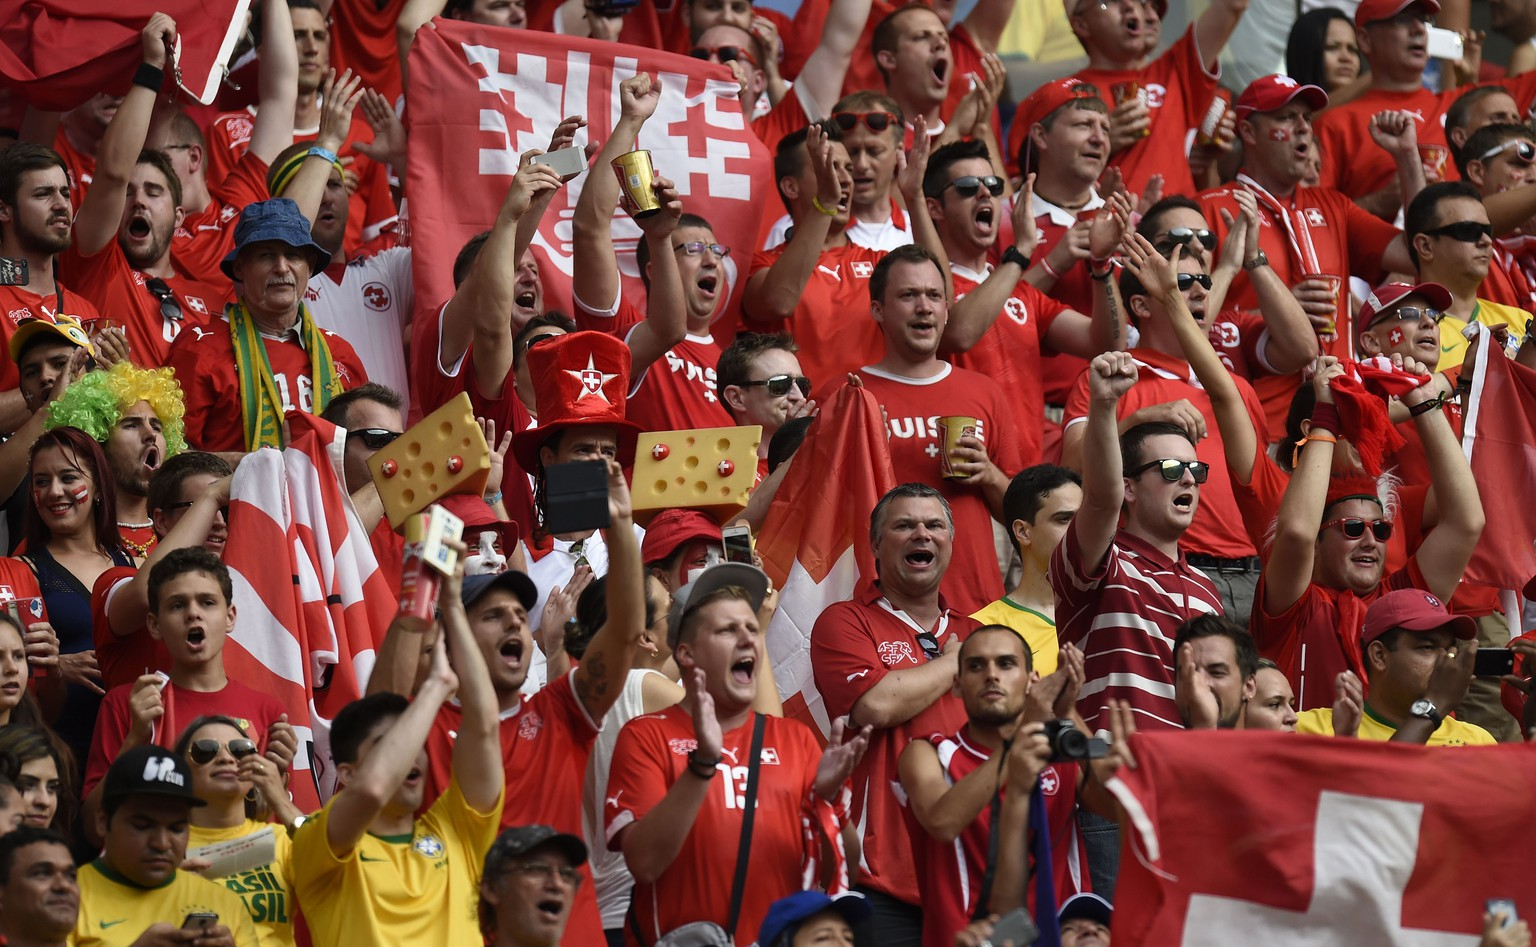 Swiss fans cheer for their team before the start of the Group E football match between Honduras and Switzerland at the Amazonia Arena in Manaus during the 2014 FIFA World Cup on June 25, 2014.  AFP PHOTO / JUAN BARRETO